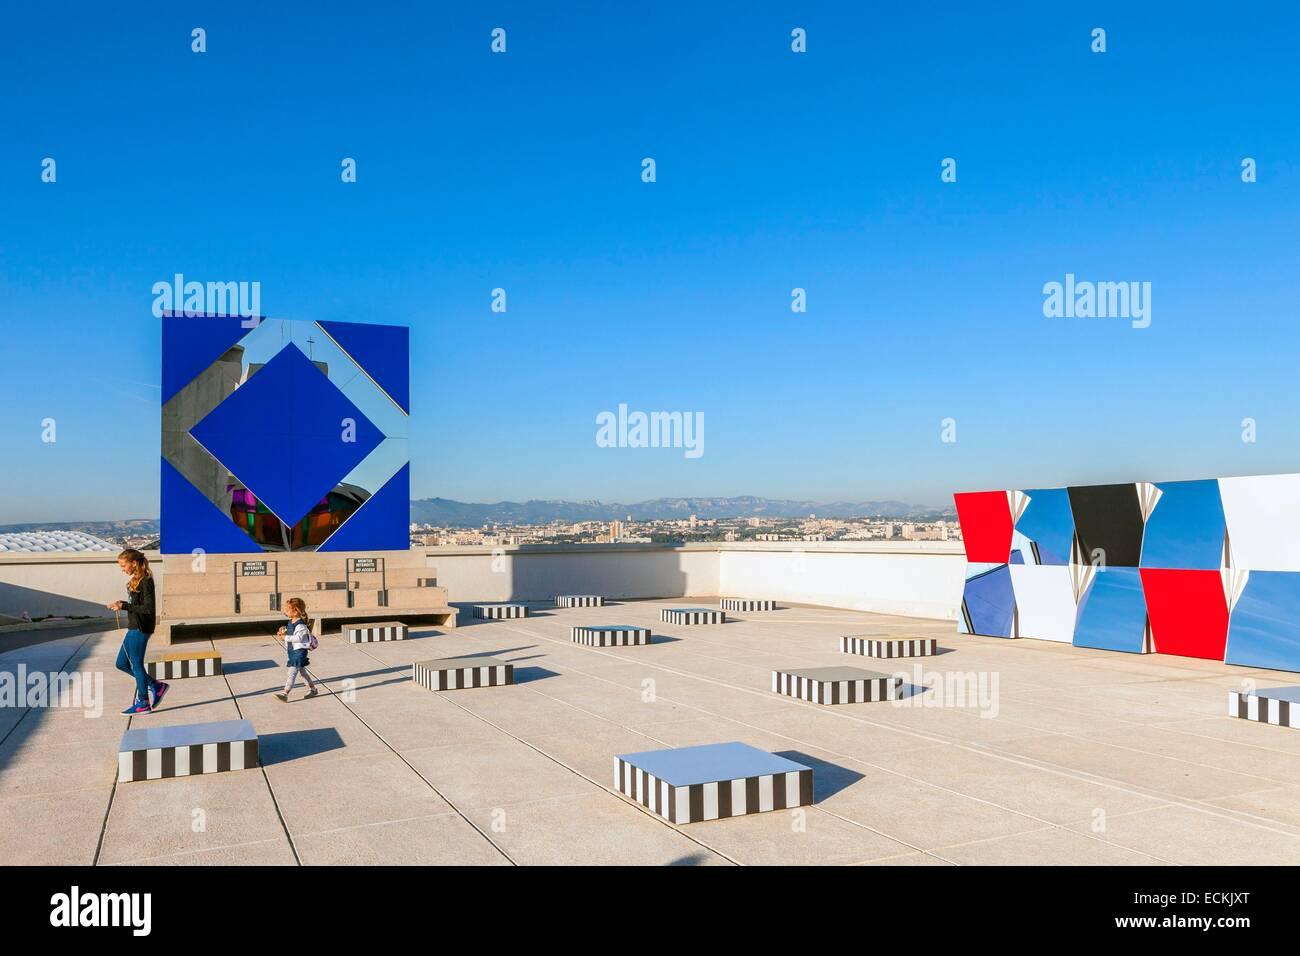 France, Bouches du Rhone, Marseille, 9th arrondissement, the radiant city of the architect Le Corbusier, exhibition - Stock Image